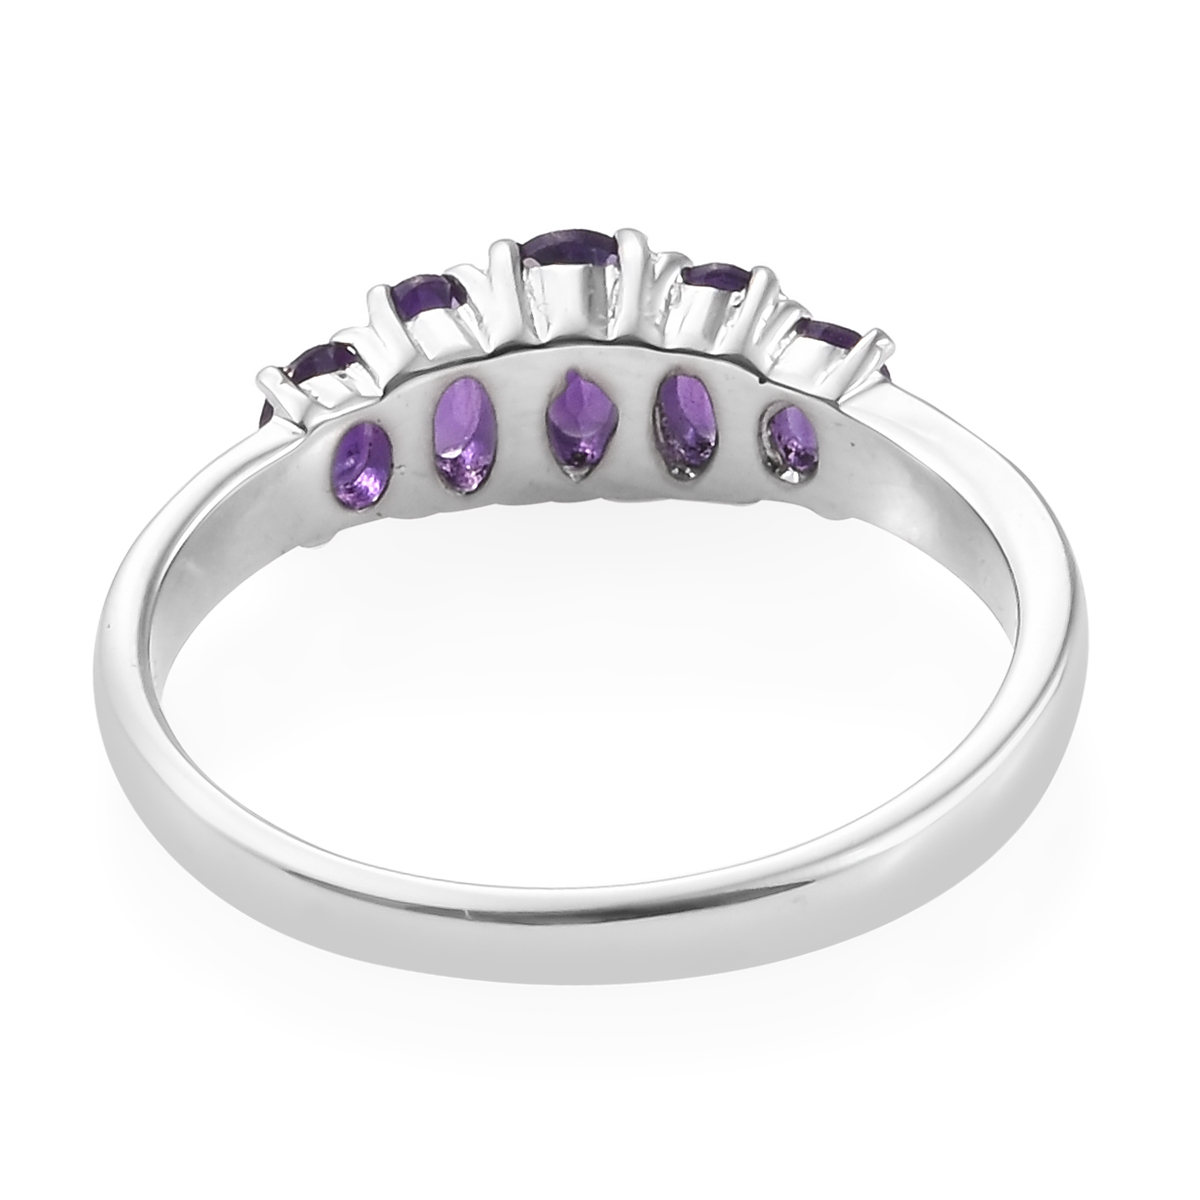 Amethyst 5 Stone Ring in Stainless Steel (Size 9.0) 1.24 ctw